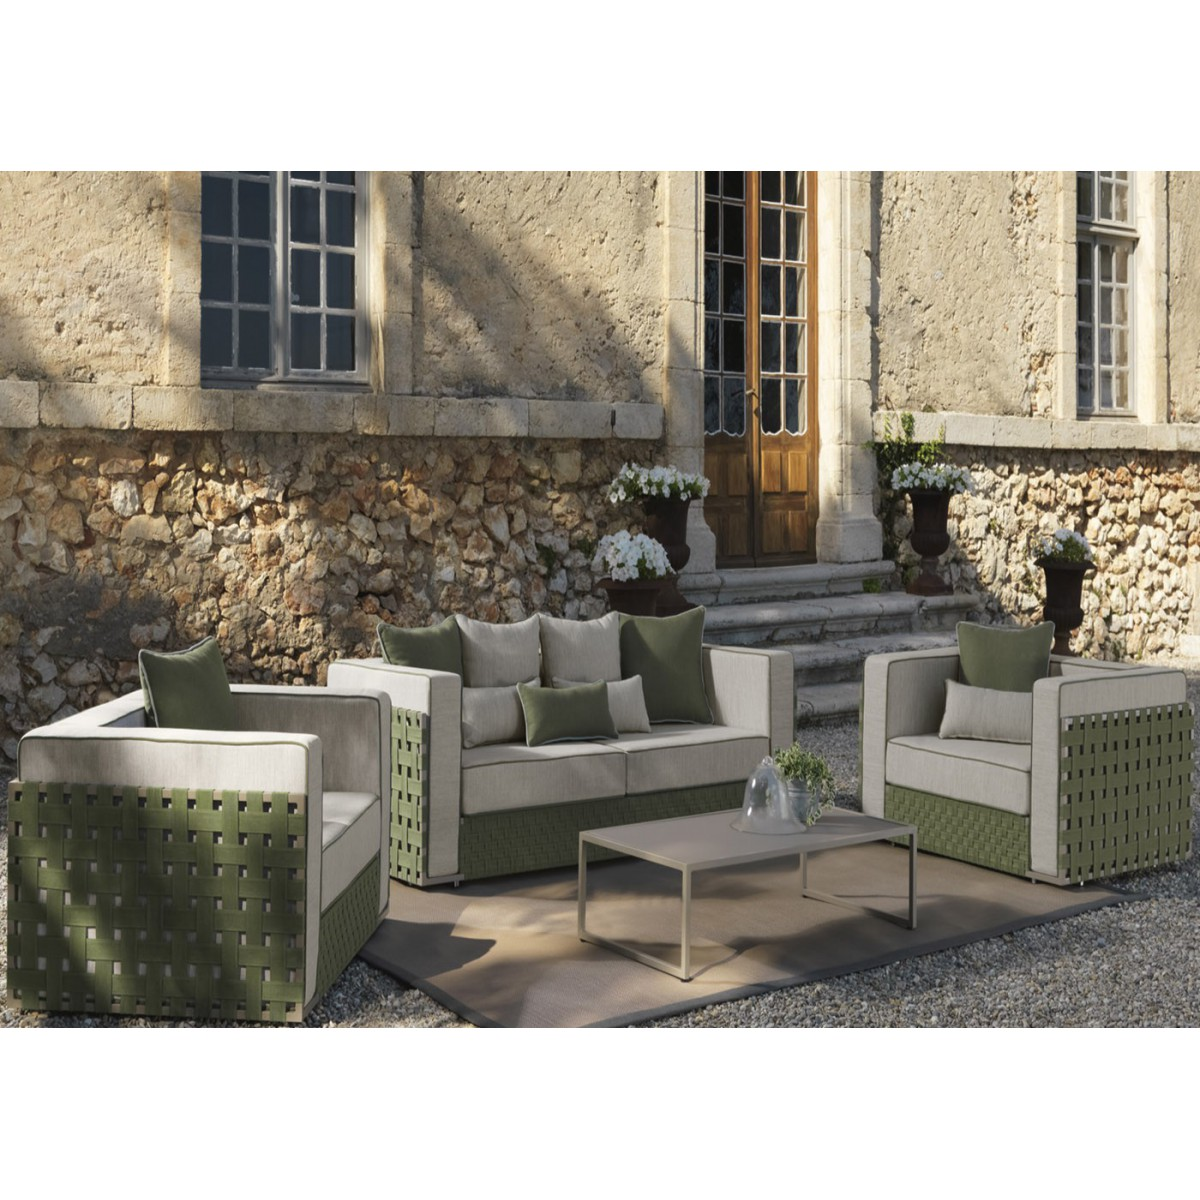 mobilier jardin original marseille maison design. Black Bedroom Furniture Sets. Home Design Ideas